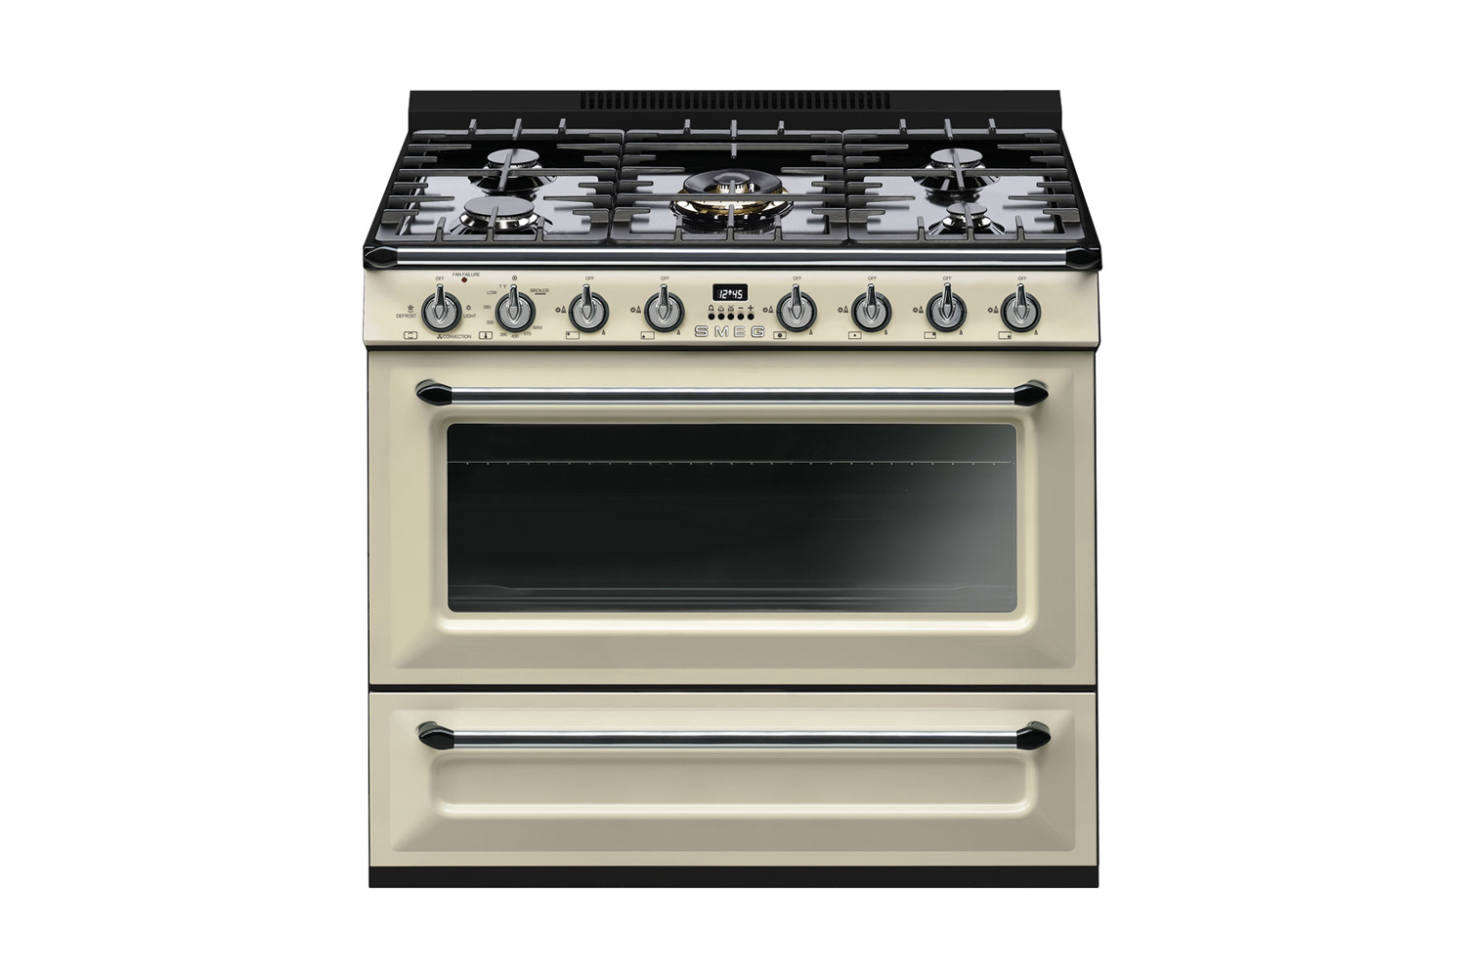 The Smeg Victoria Aesthetic Free-Standing All-Gas 36-Inch Range in Cream Enamel is $4,499 at AJ Madison.